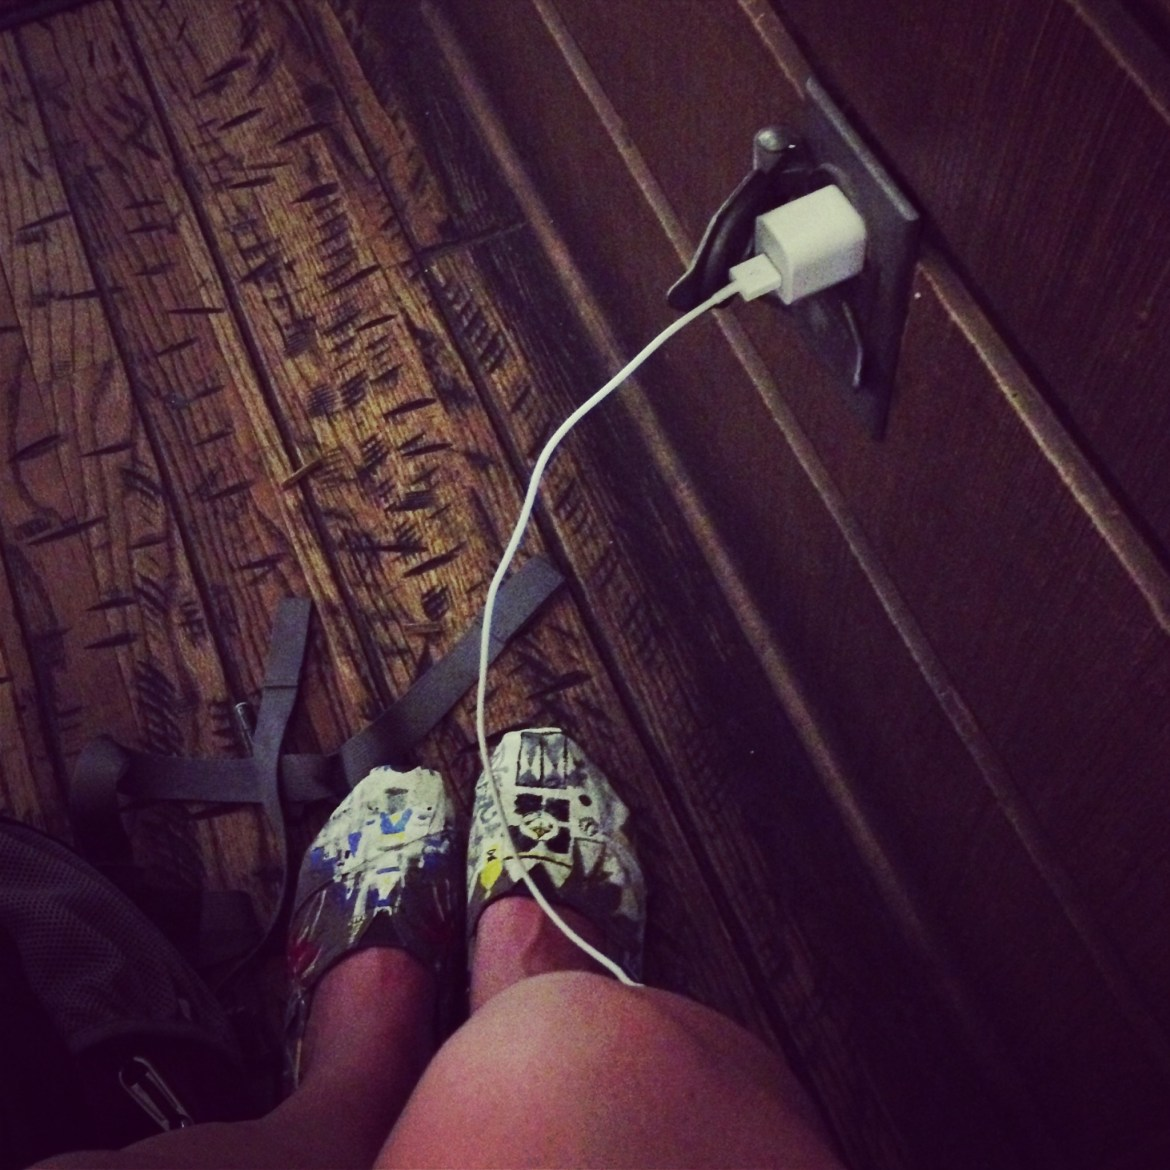 Keeping Your Cell Charged in the Disney Parks